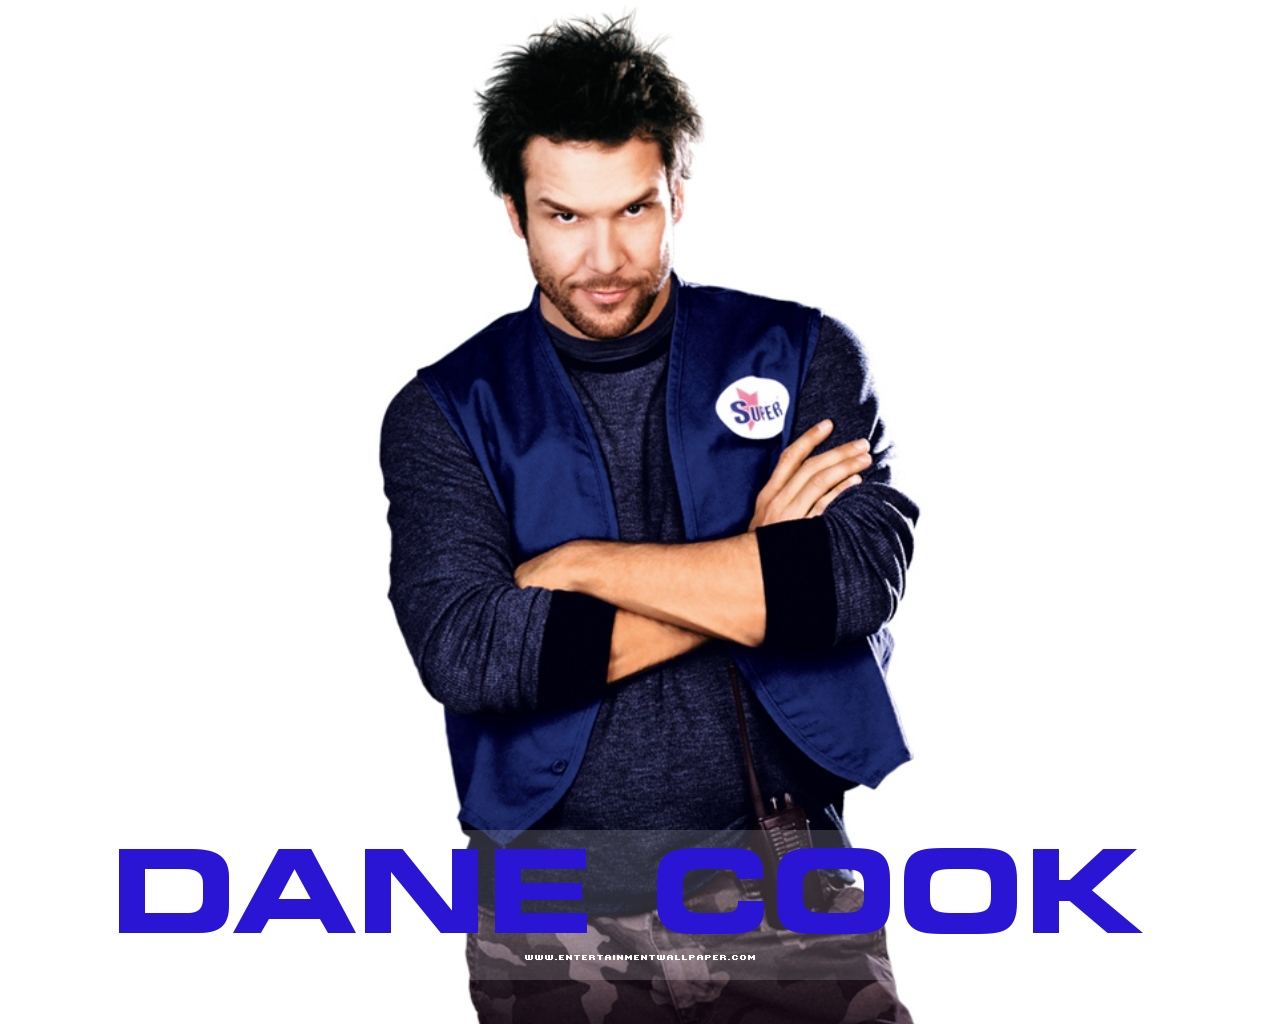 Blogger For Wallpaper dane cook hd 1280x1024